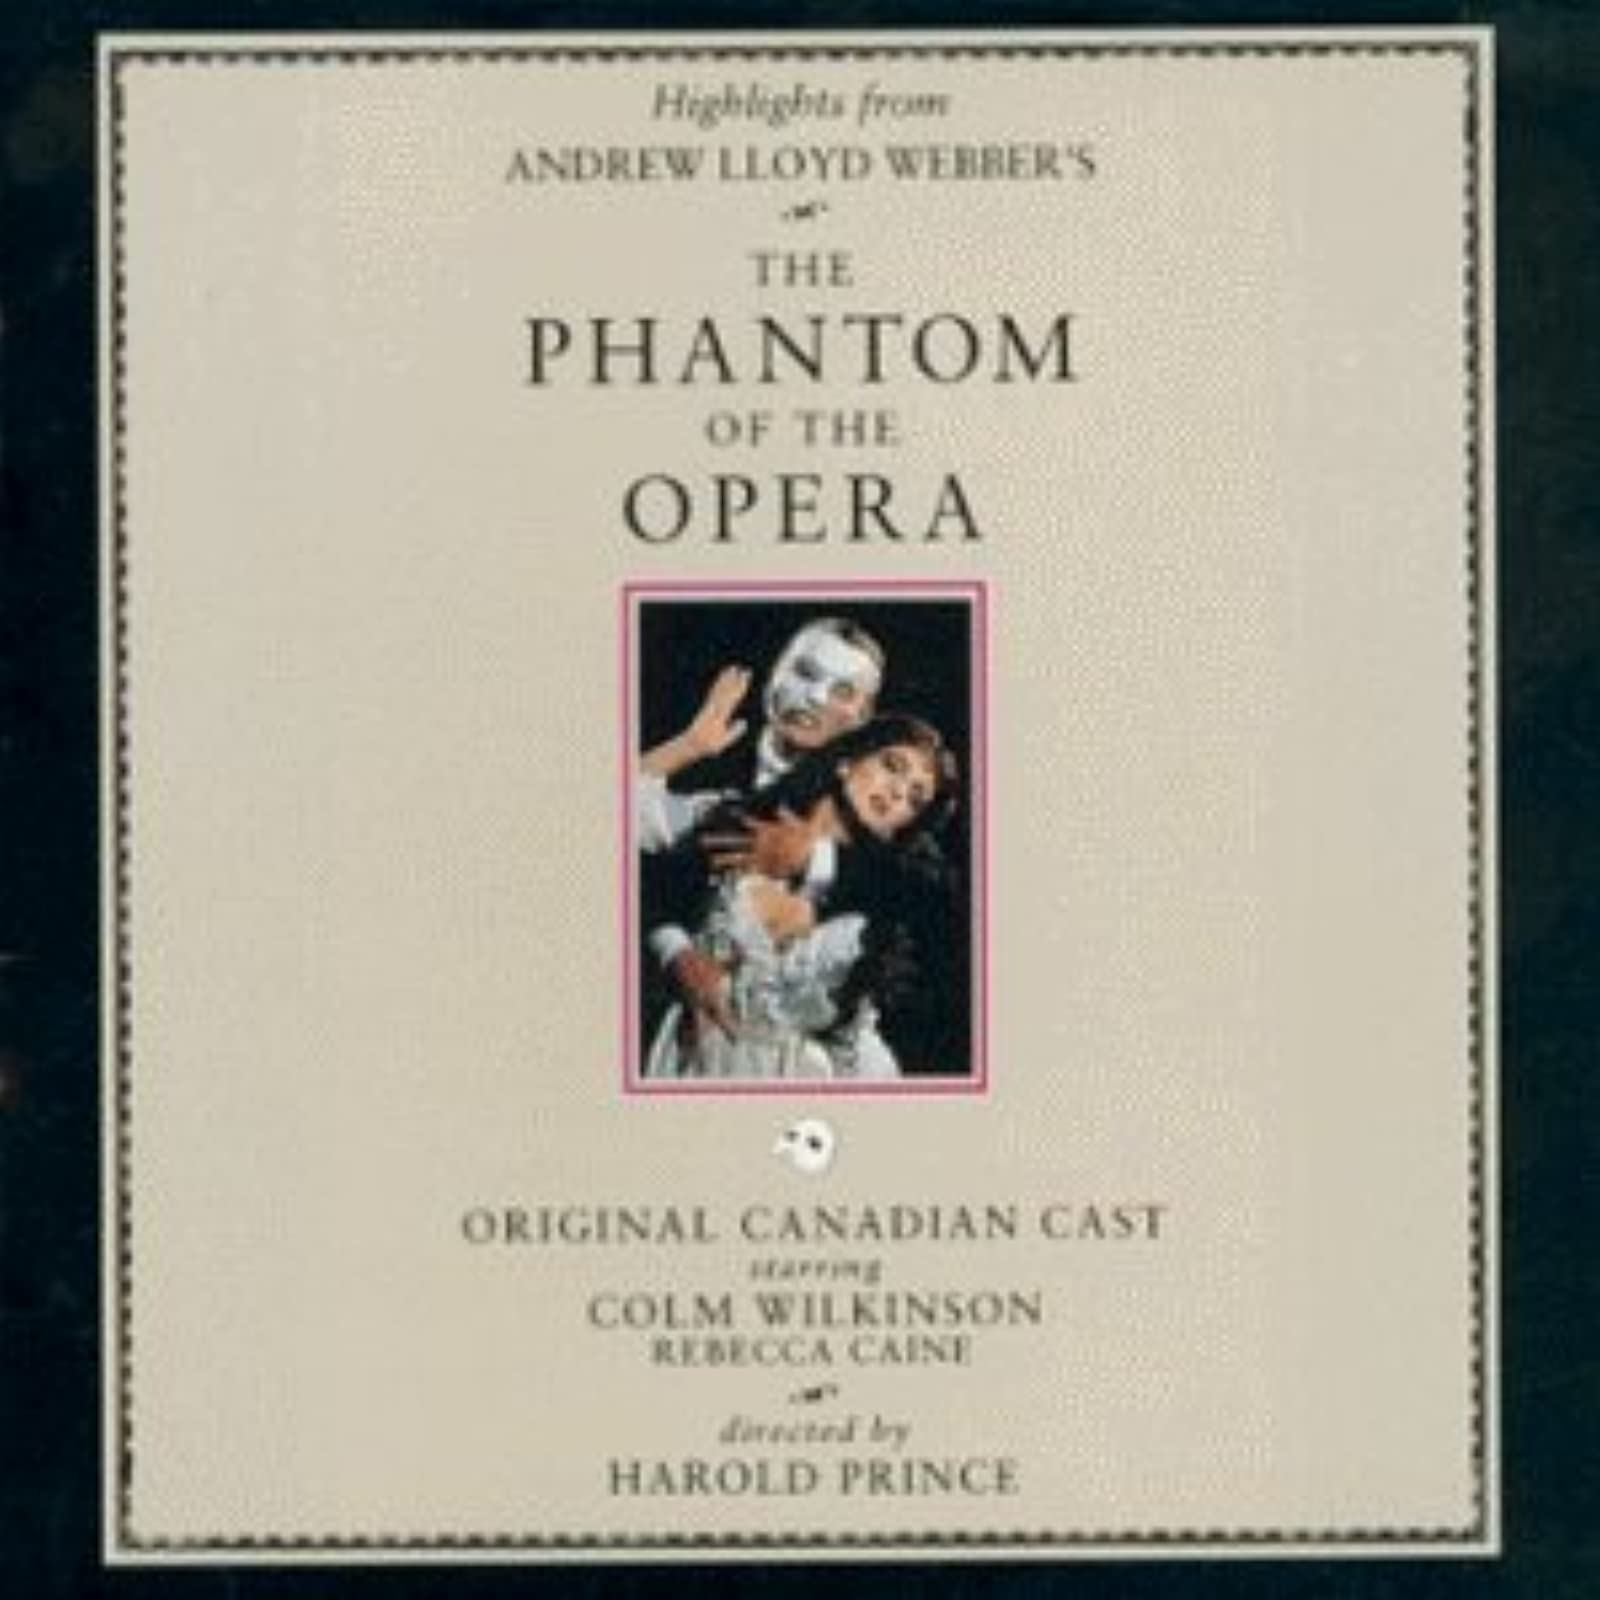 The Phantom Of The Opera Highlights From The 1989 Original Canadian